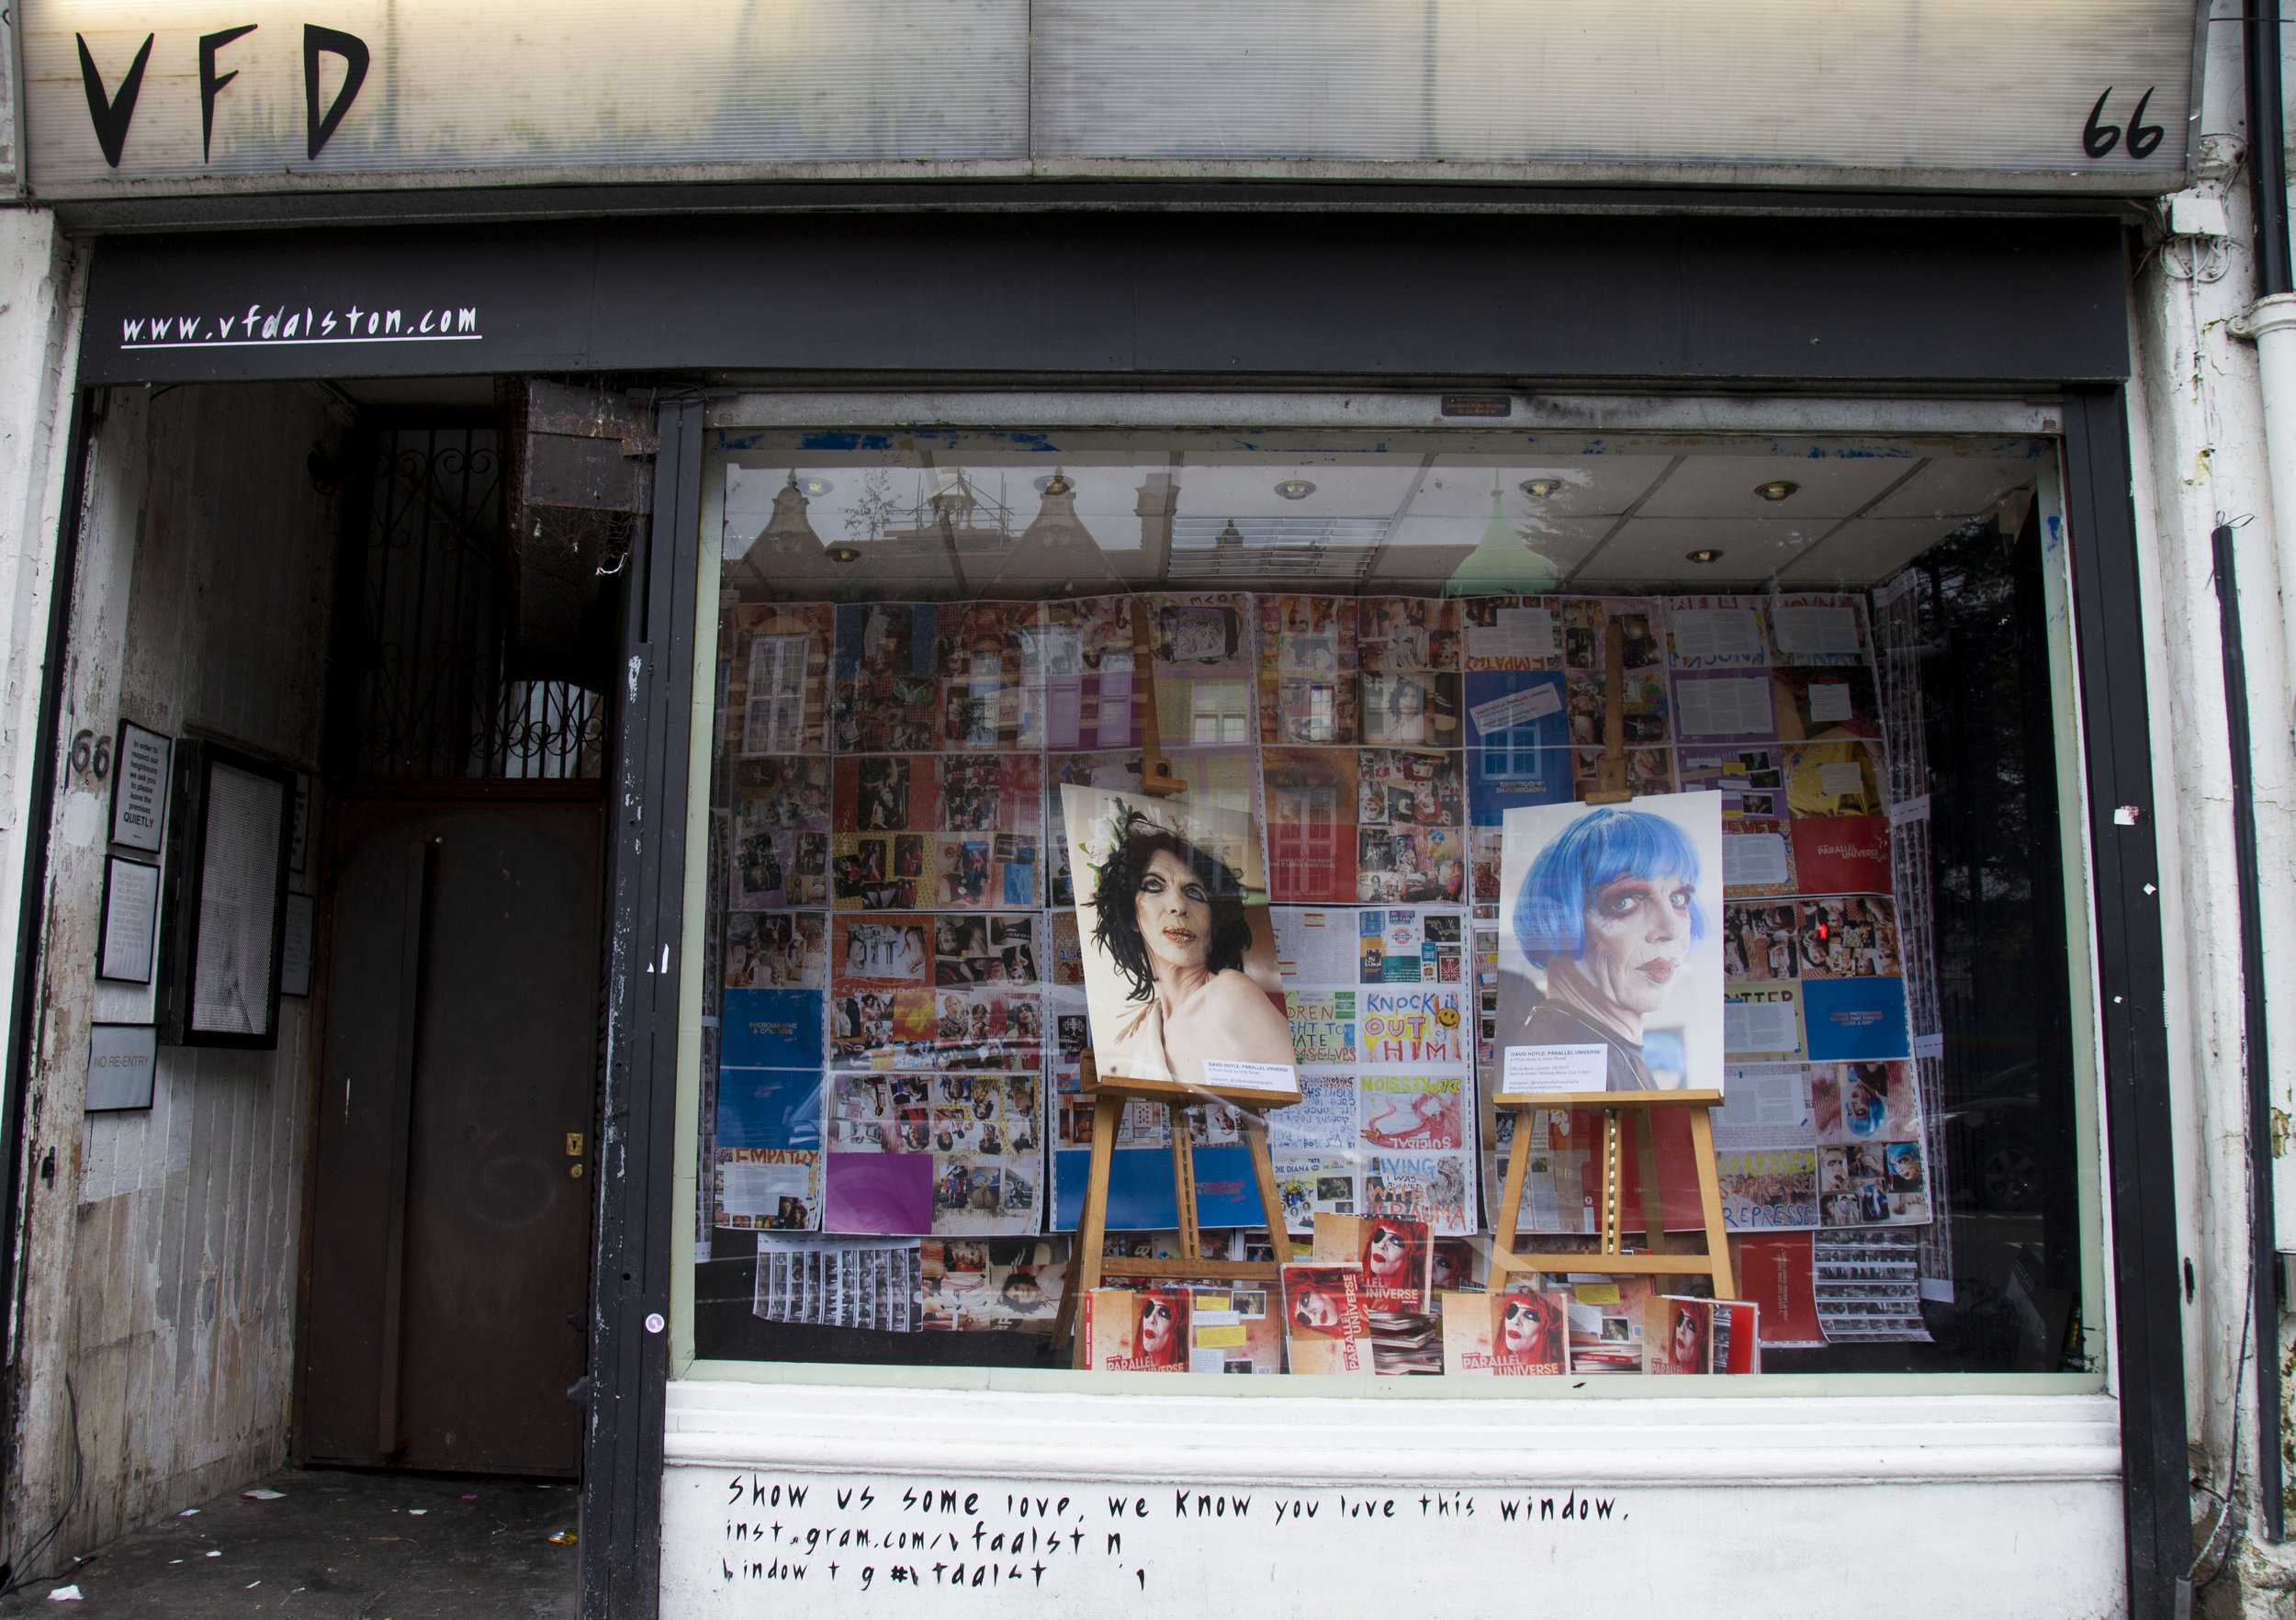 Look who's in the window of VFD! We'll be there for a month - this is a bit of a preview of the book with unseen run sheets and images from it.